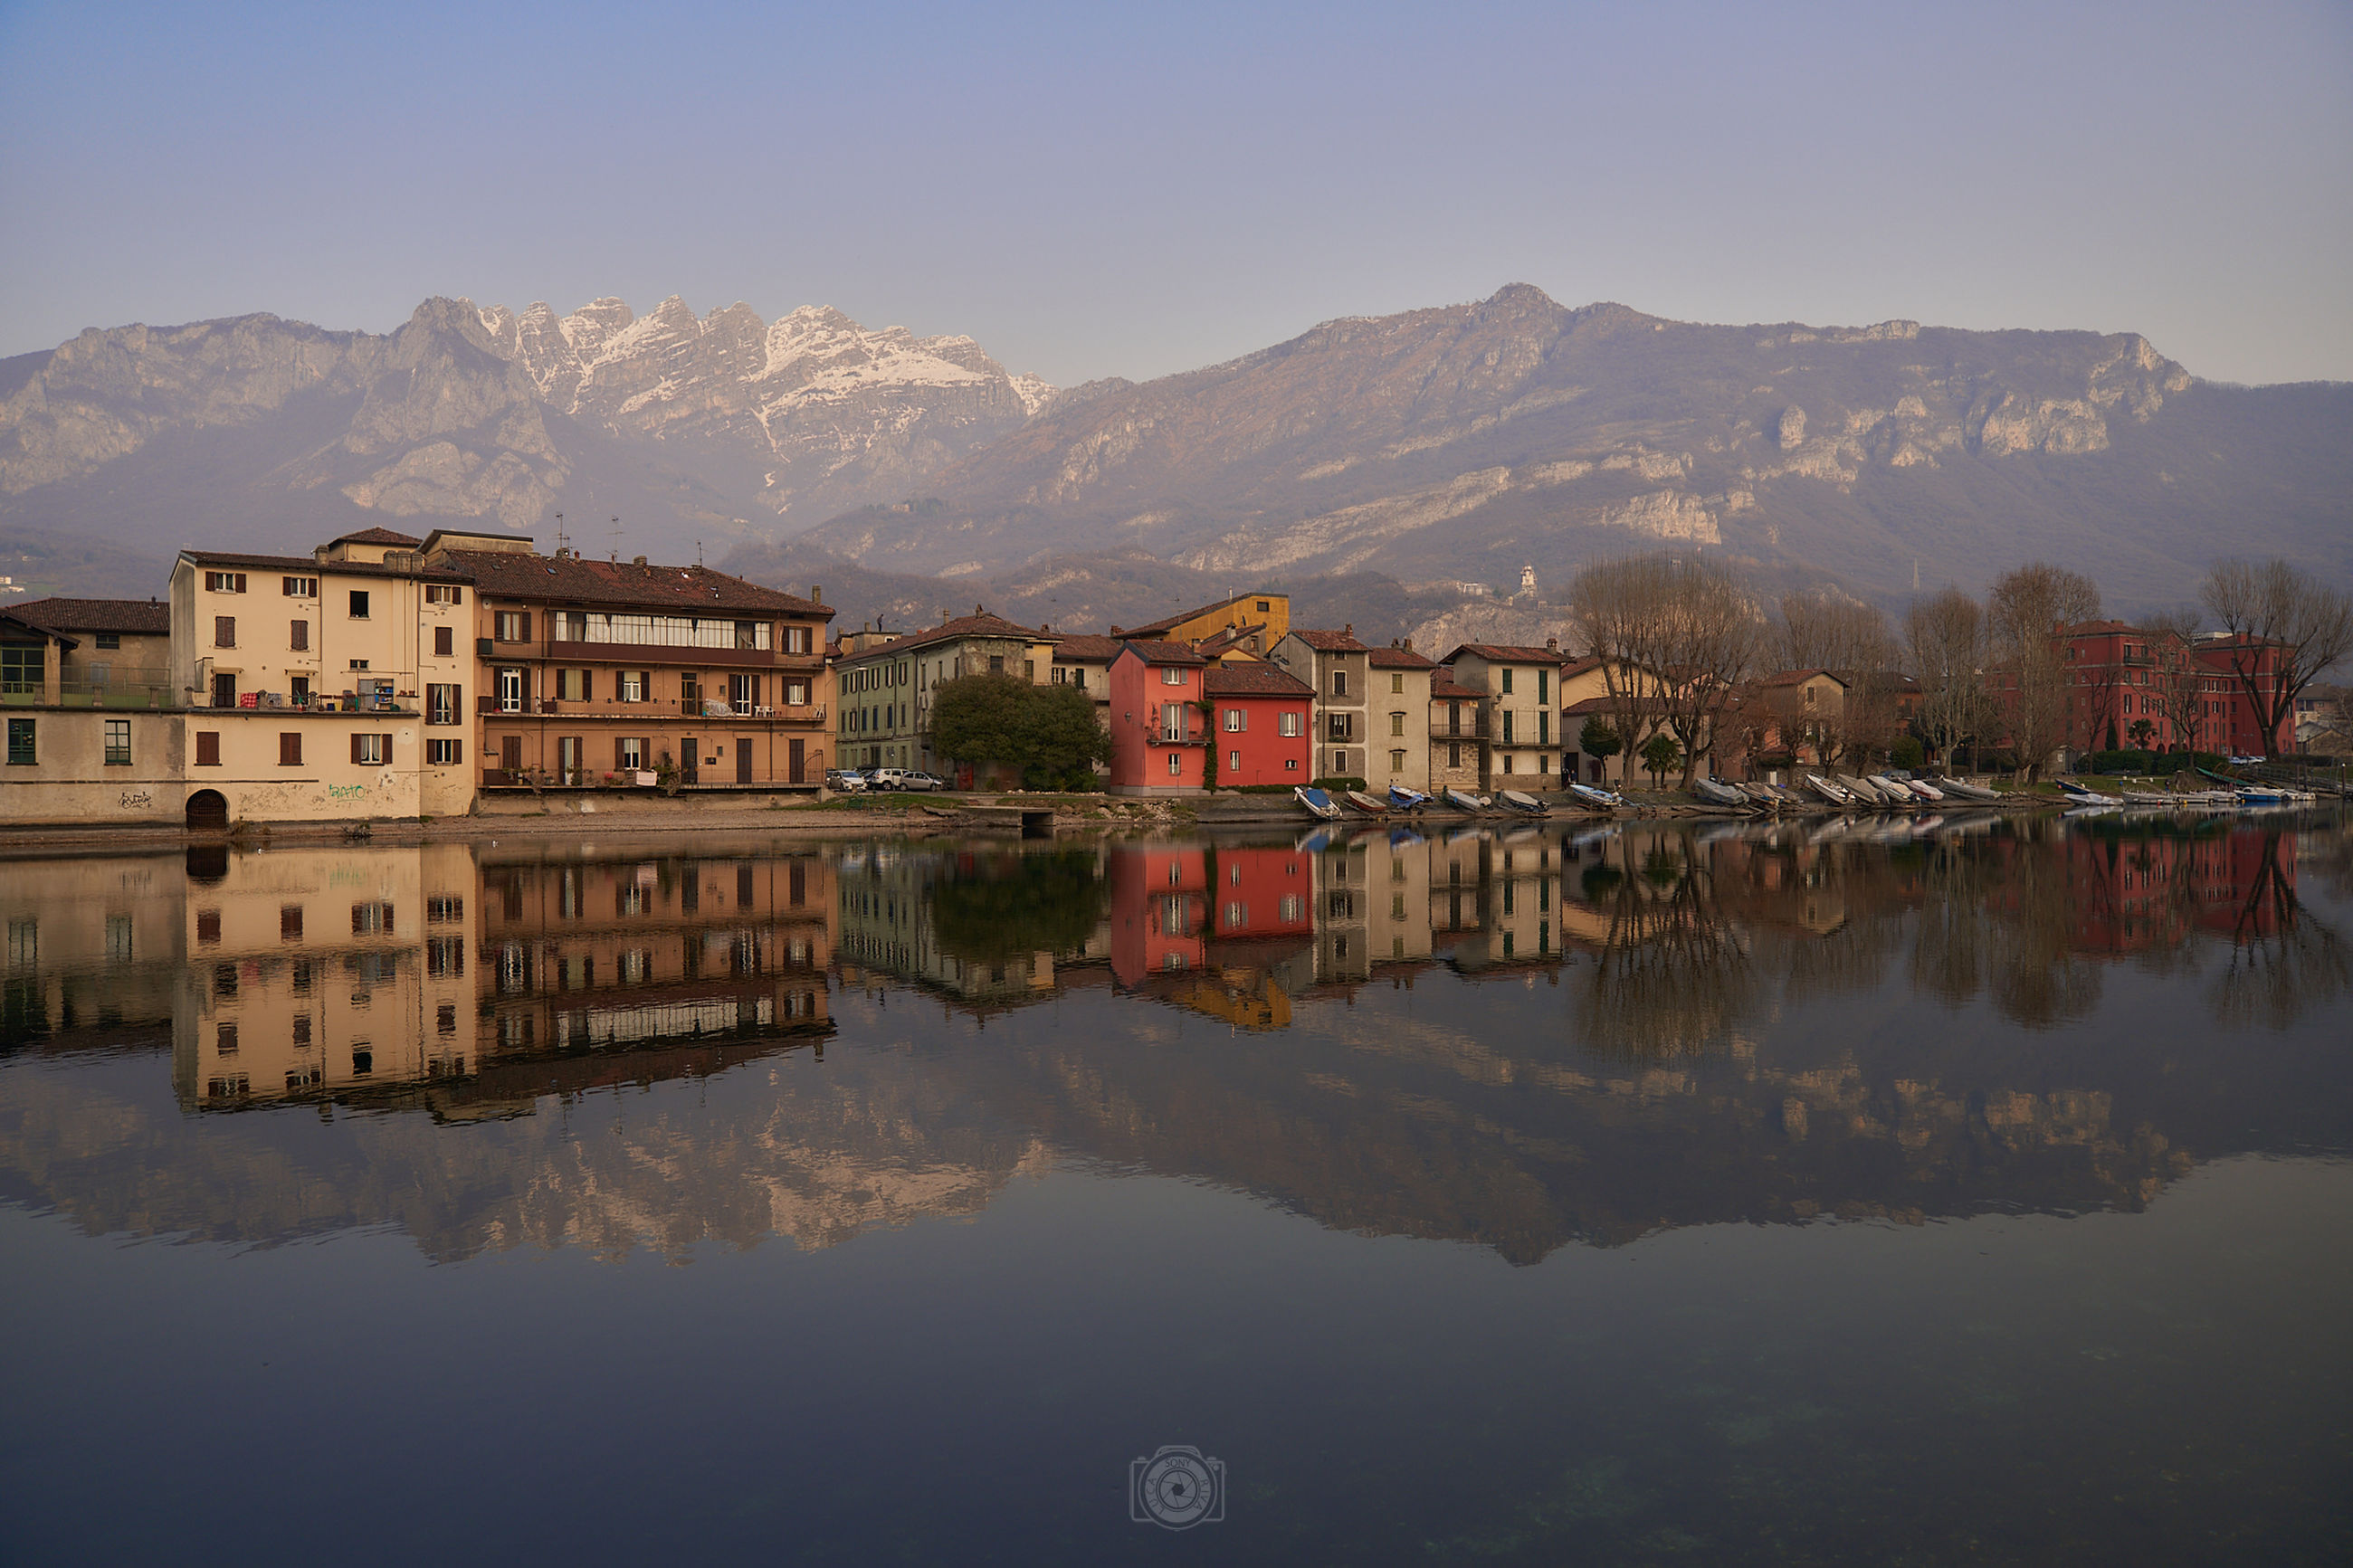 reflection, water, mountain, architecture, morning, sky, building exterior, built structure, building, nature, lake, mountain range, dusk, city, house, scenics - nature, travel destinations, no people, beauty in nature, landscape, cityscape, environment, residential district, travel, outdoors, tranquility, town, waterfront, clear sky, tourism, land